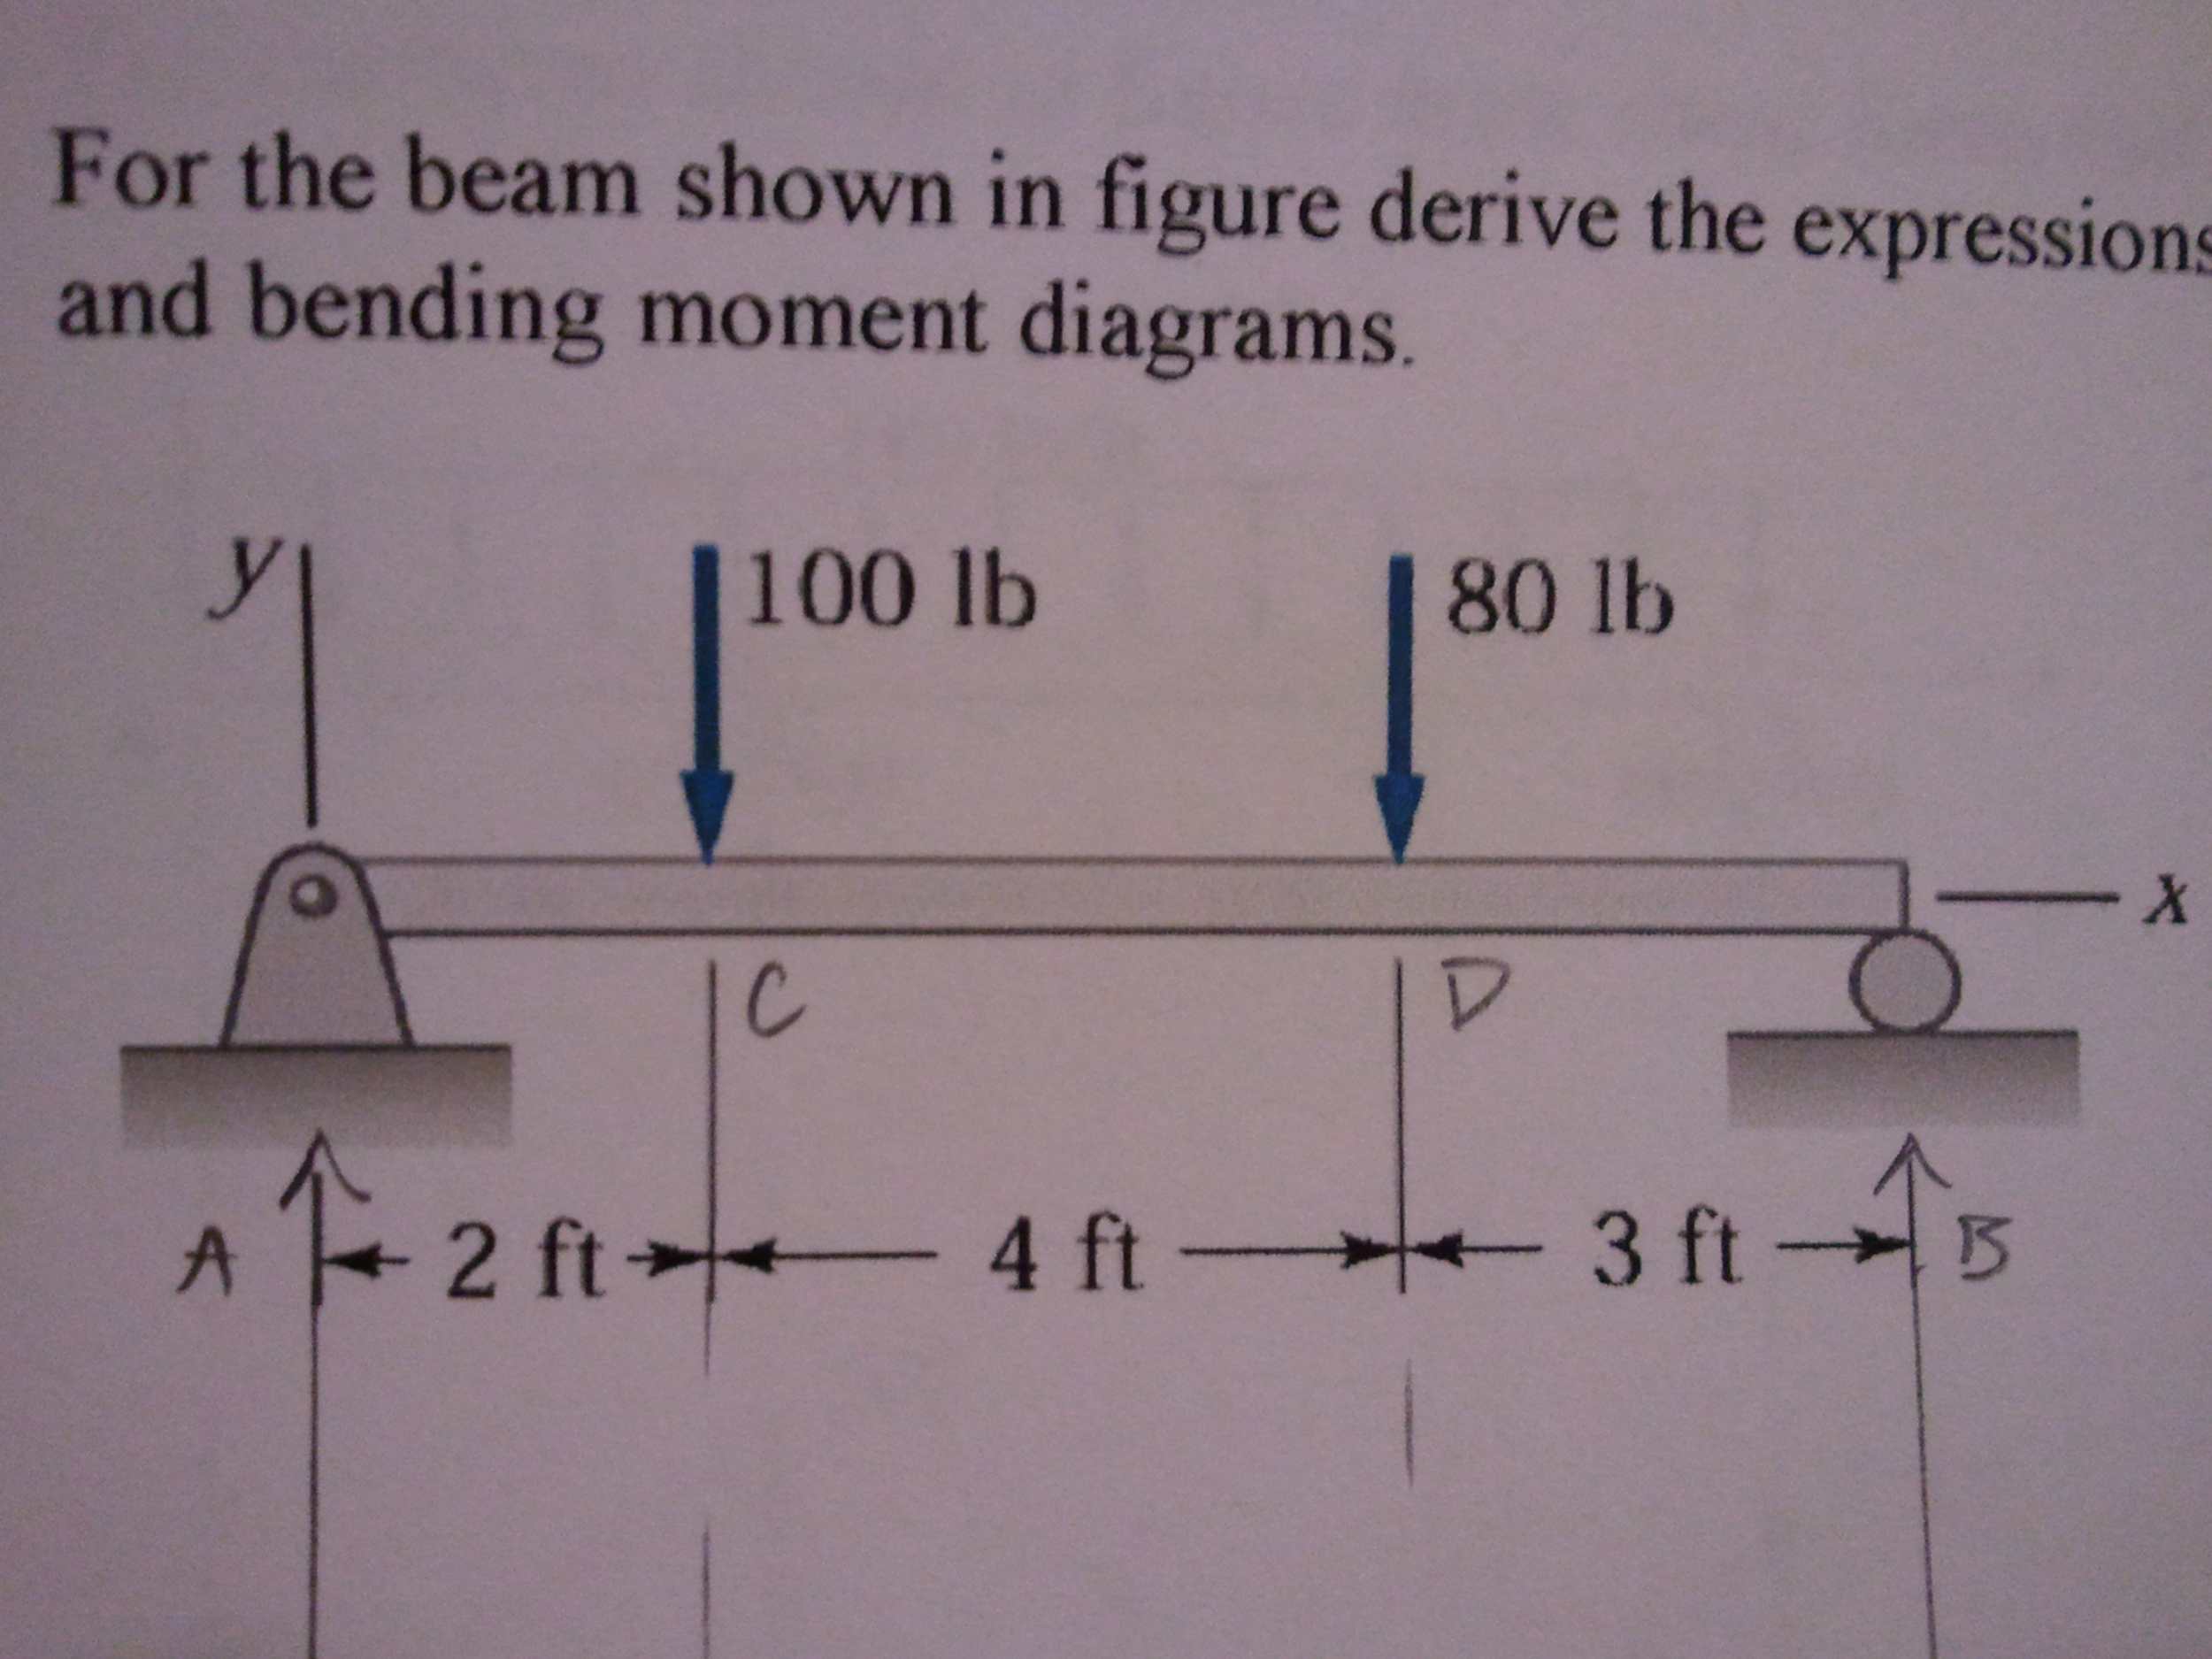 draw shear force and bending moment diagrams for t draw the shear force and bending moment diagrams for a simply supported beam draw the shear force and bending moment diagrams for the beam